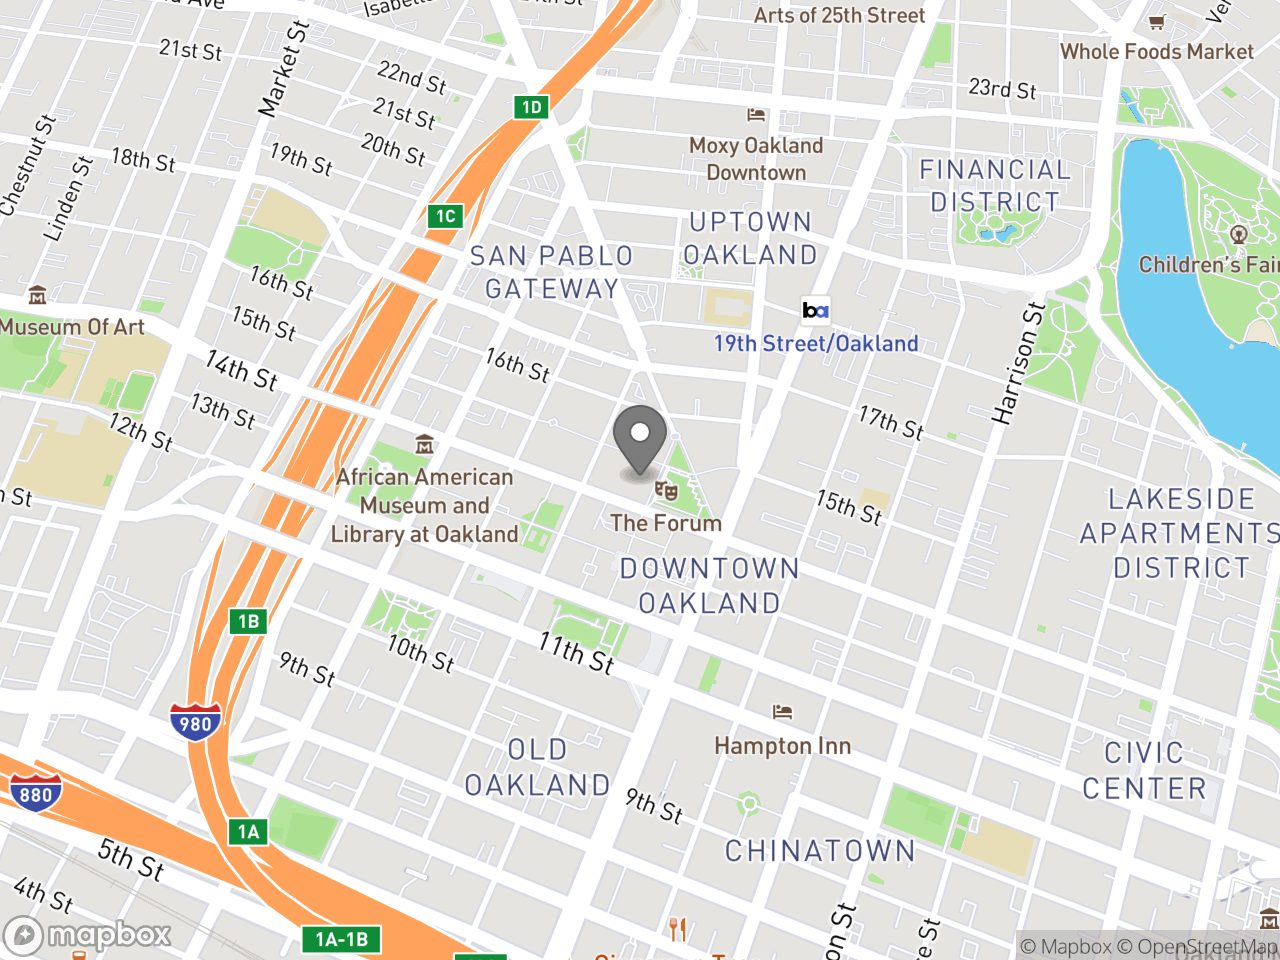 Map image for **CANCELLED** Rent Board Regular Meeting March 26, 2020, located at 1 Frank H. Ogawa Plaza in Oakland, CA 94612